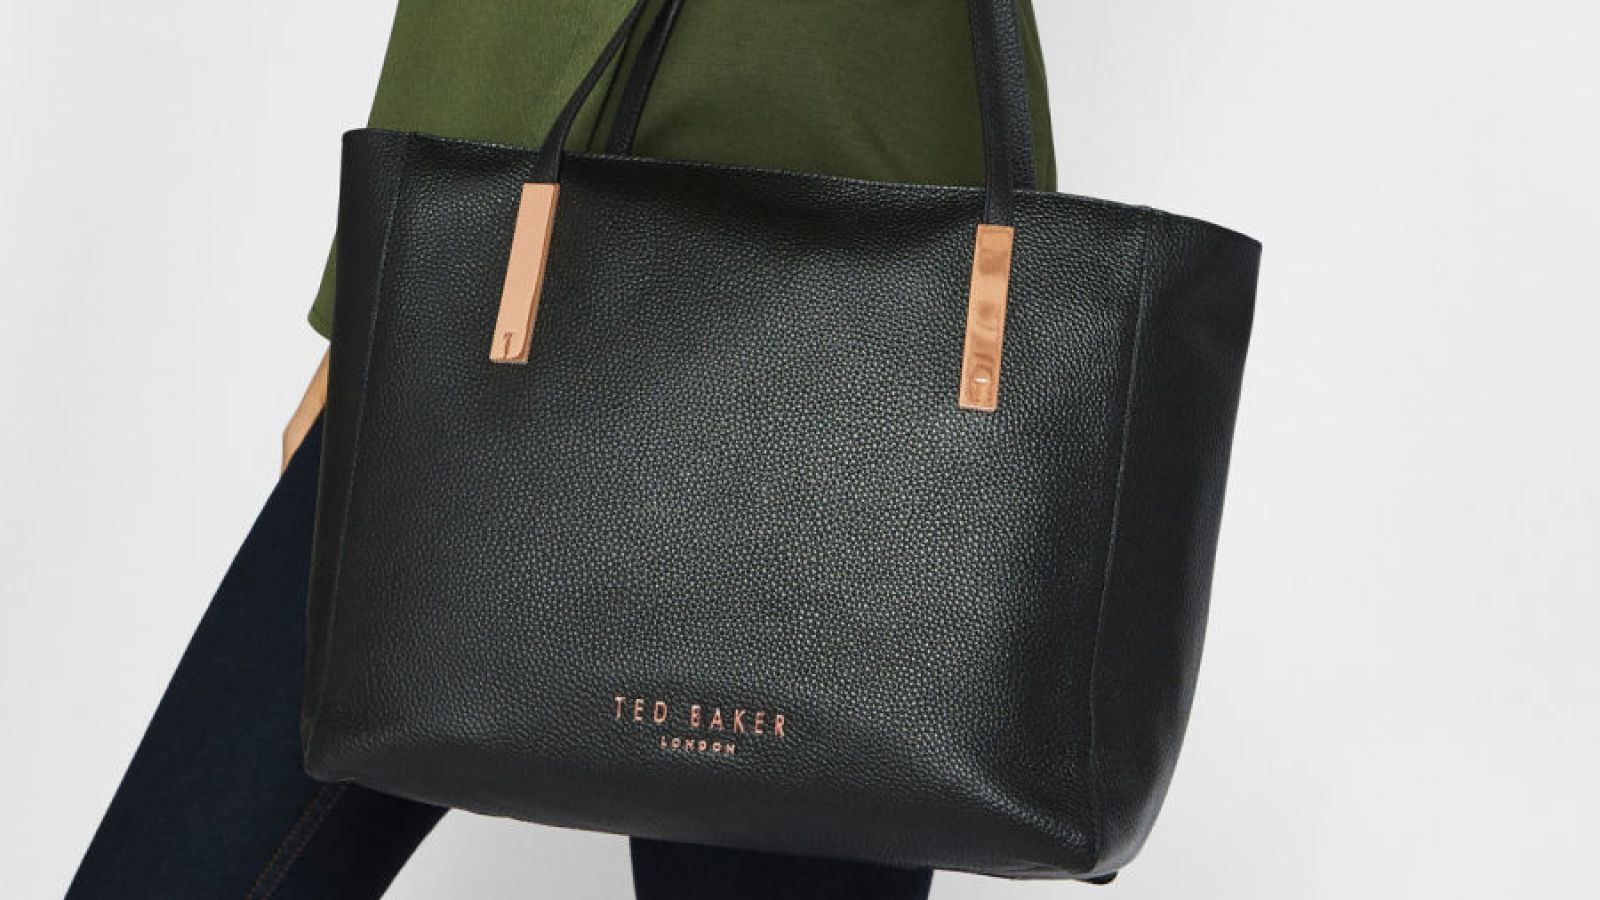 f3c8563a5be8 These Ted Baker Bags Are 40 Percent Off  Grab Our Favorites